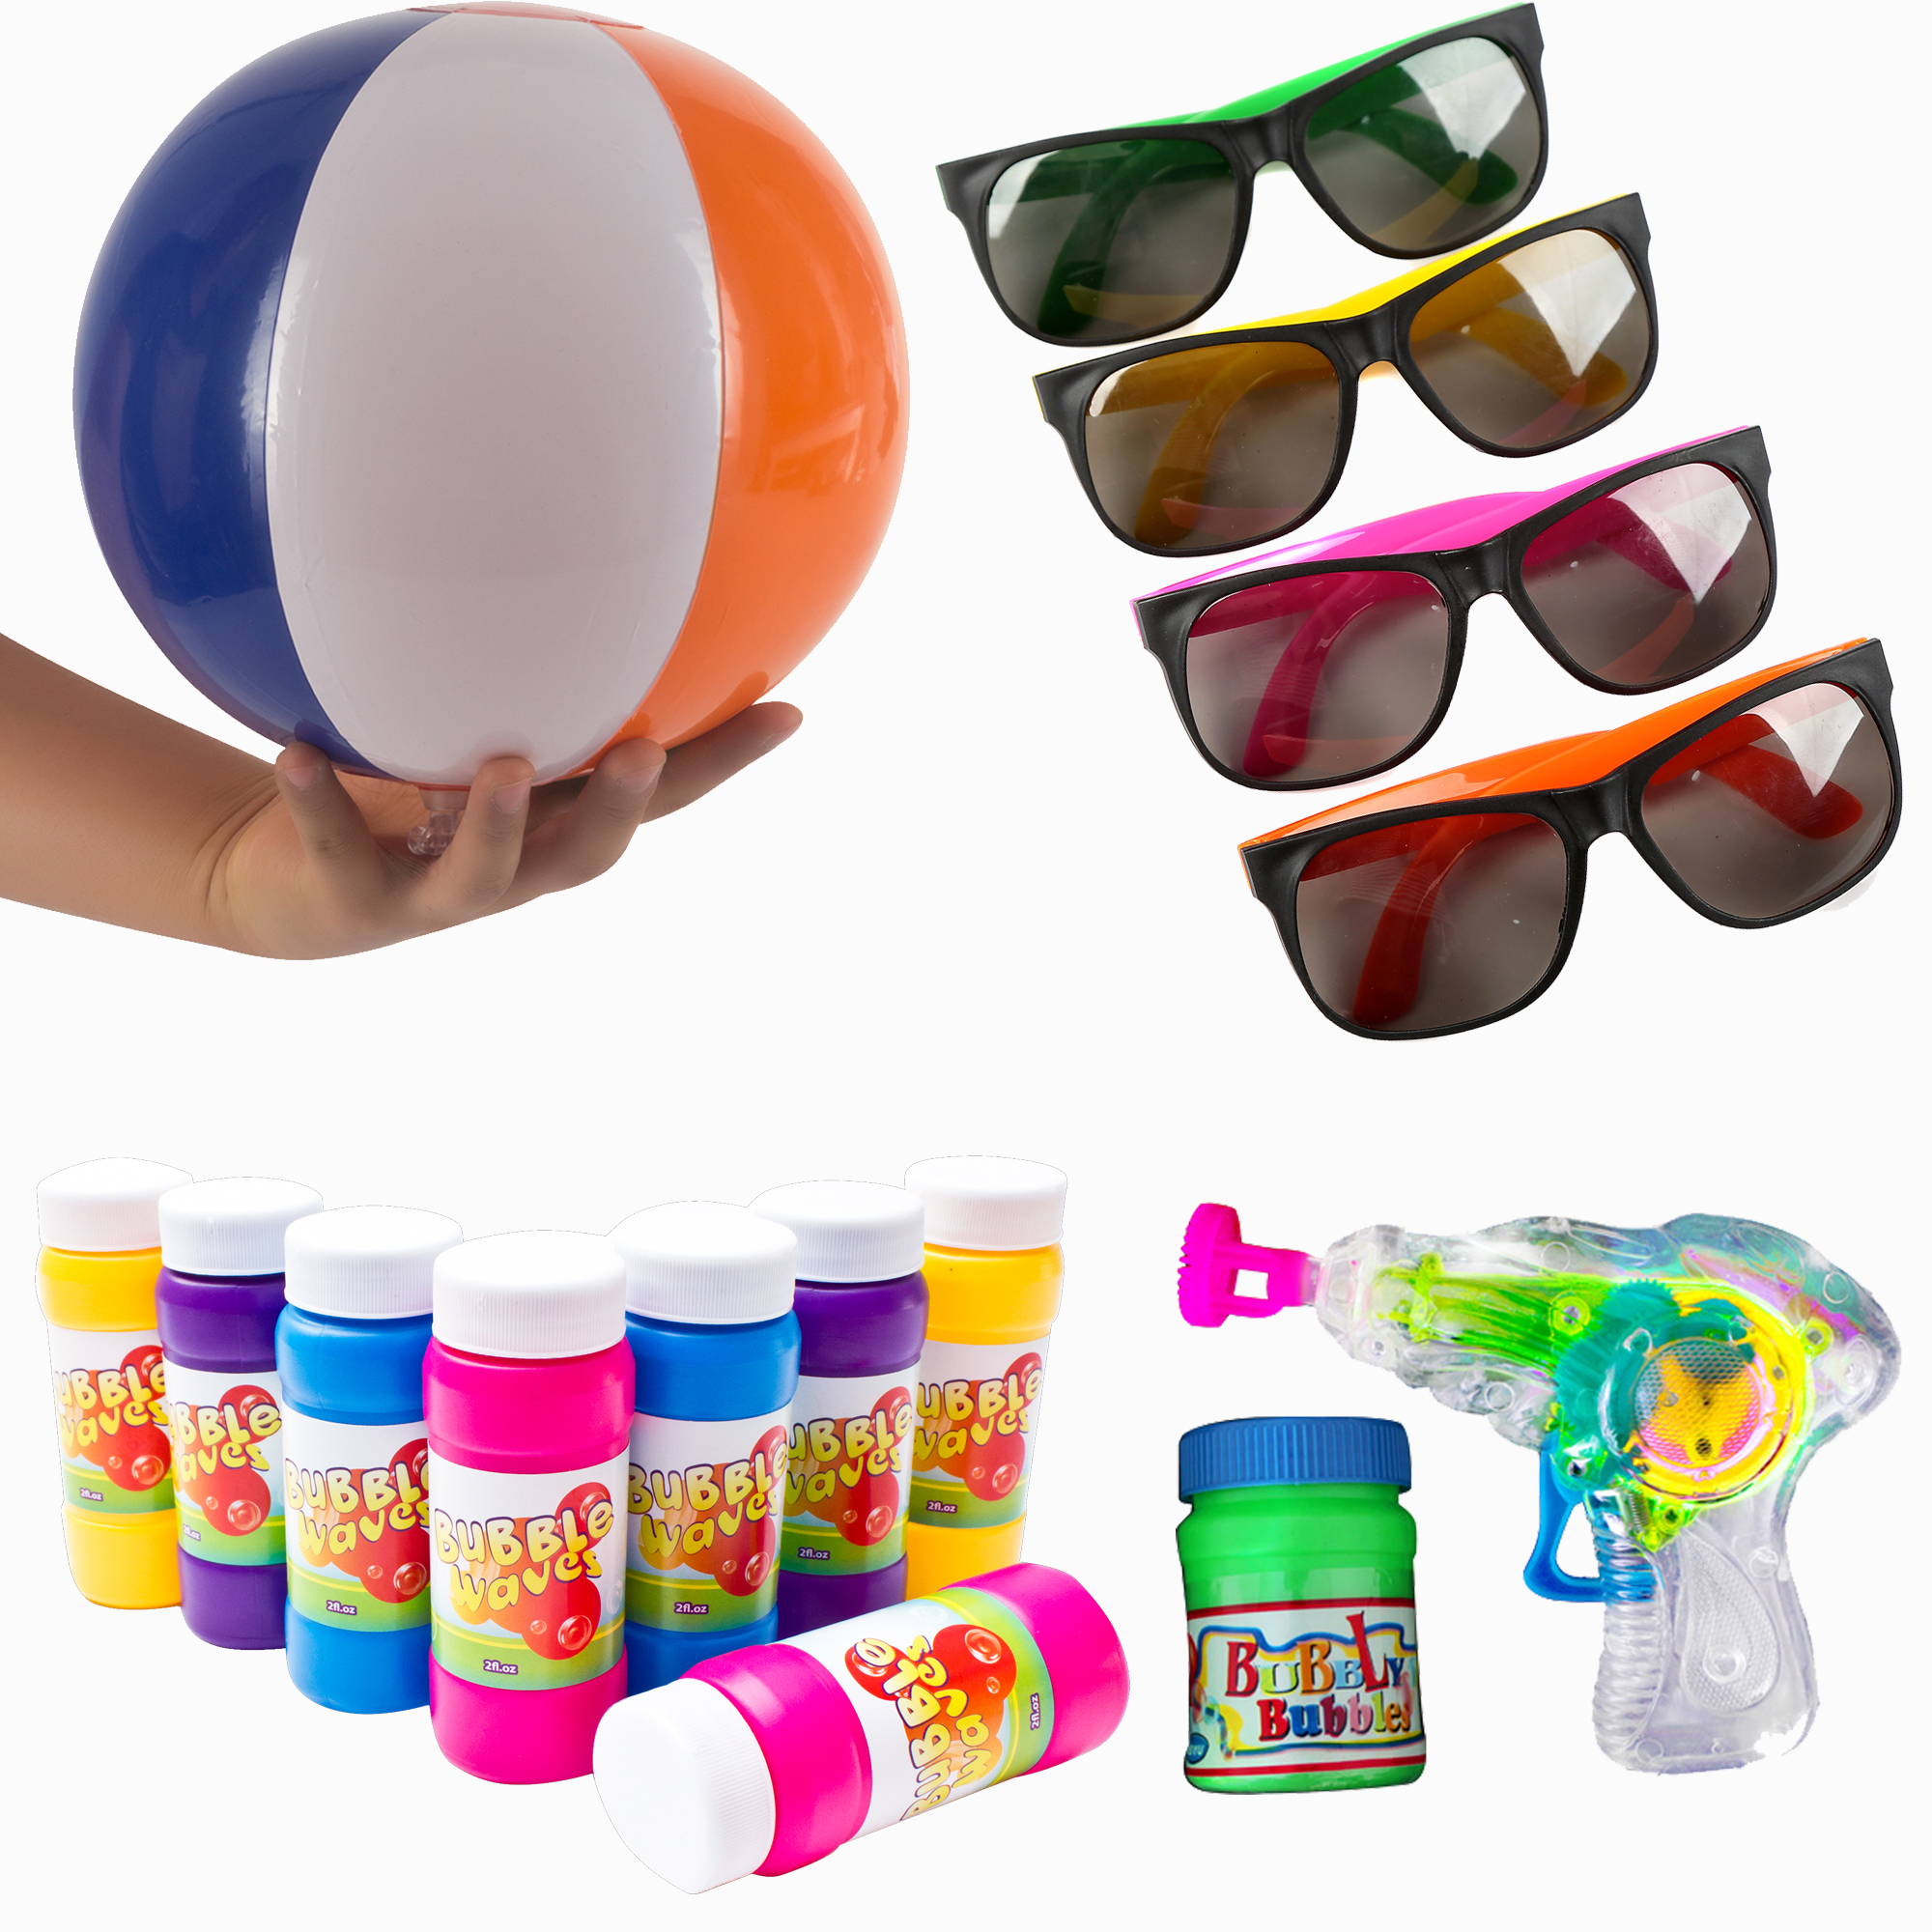 Beach toy party pack